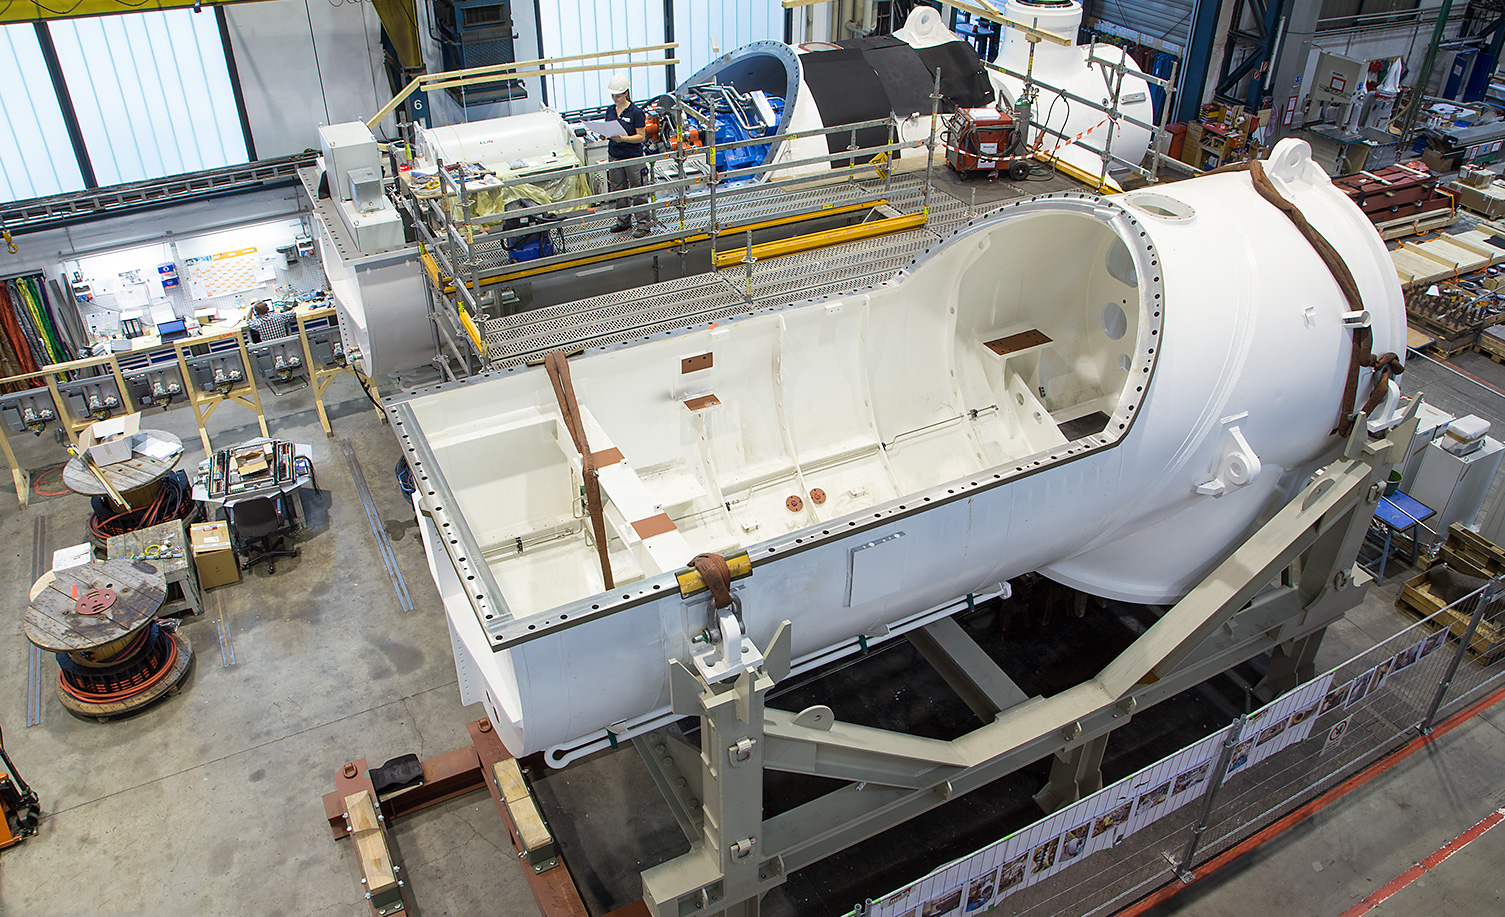 Assembly of two tidal turbine nacelles at the ANDRITZ HYDRO plant in Ravensburg, Germany.